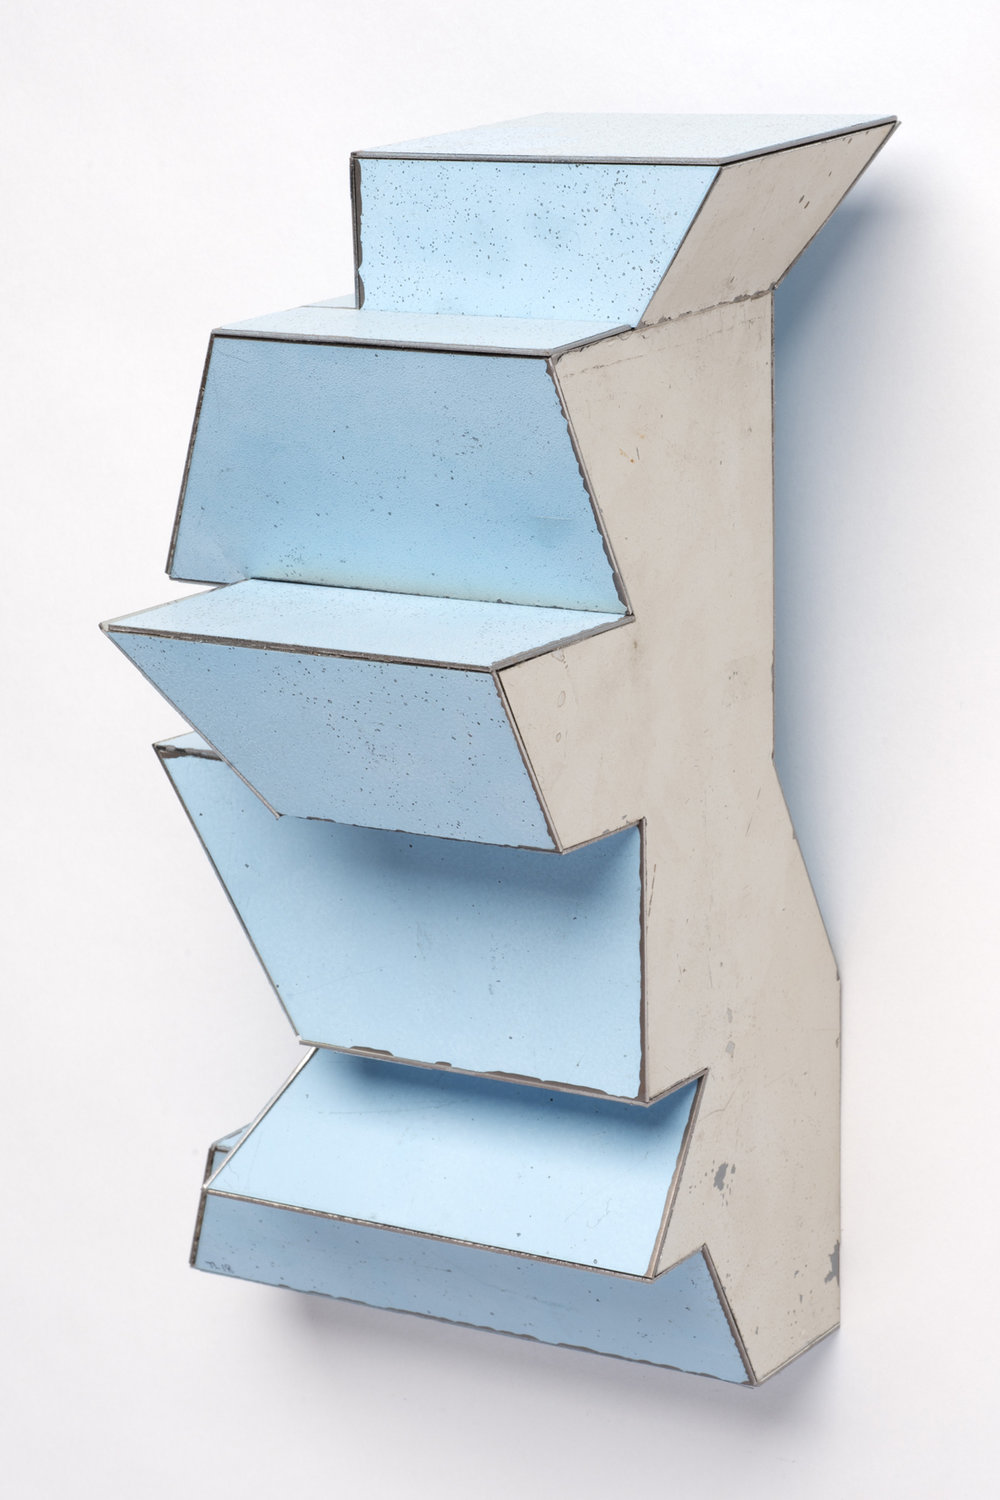 Traffic Flow, 9 x 5 x 5 inches / 22.9 x 12.7 x 12.7 cm, salvage steel, marine-grade plywood, silicone, vulcanized rubber, hardware, 2018